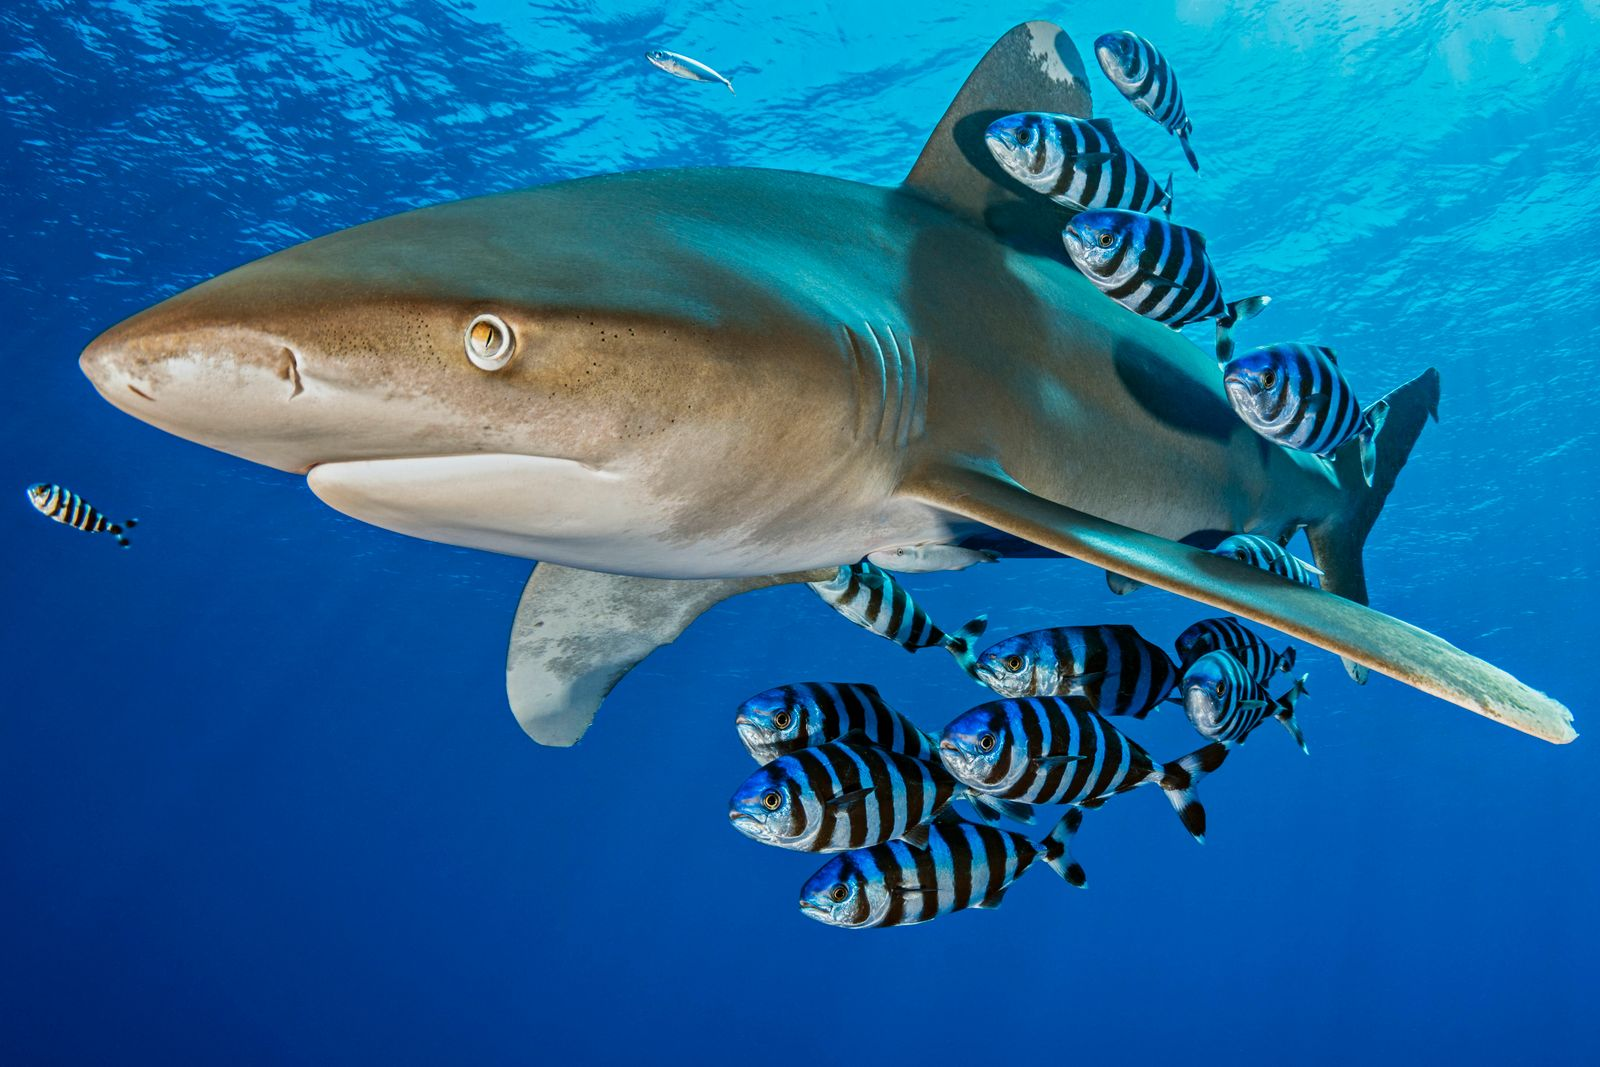 Oceanic whitetip shark (Carcharhinus longimanus) accompanied by a group of Pilotfish (Naucrates ductor). Rocky Island, E